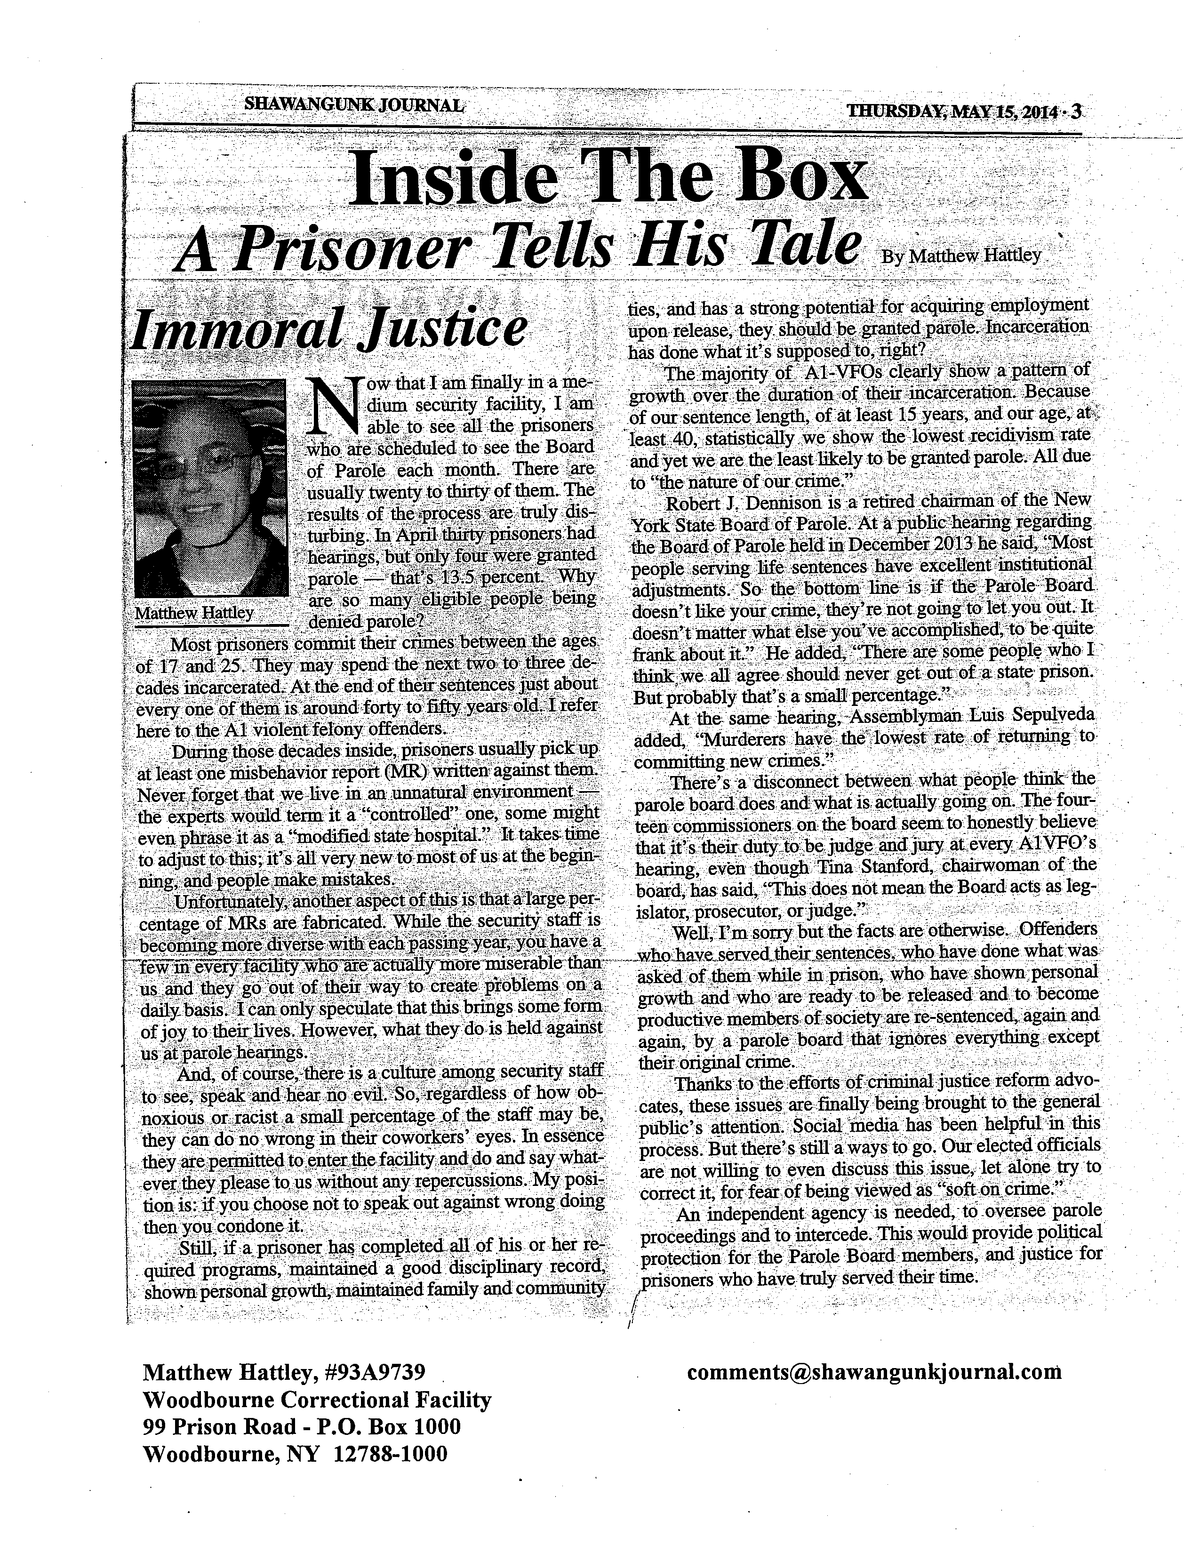 The Real Cost of Prisons Project